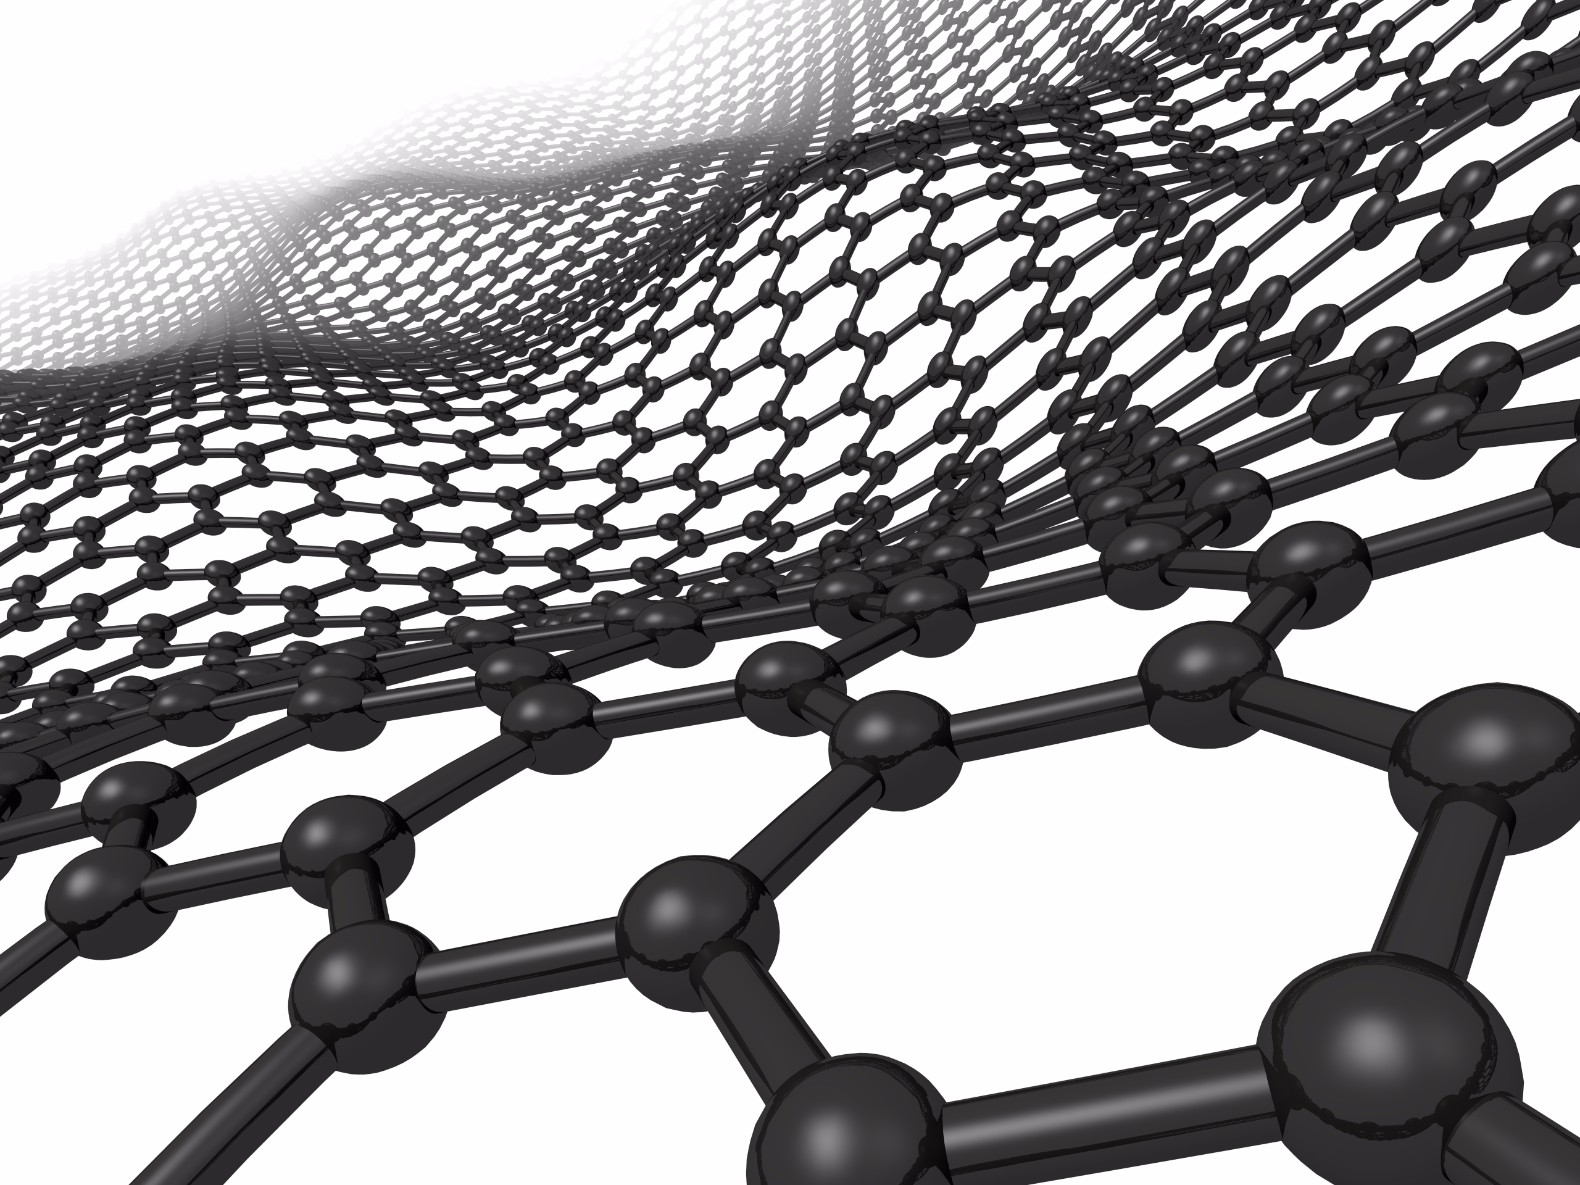 Newly discovered property of graphene could lead to infinite clean energy